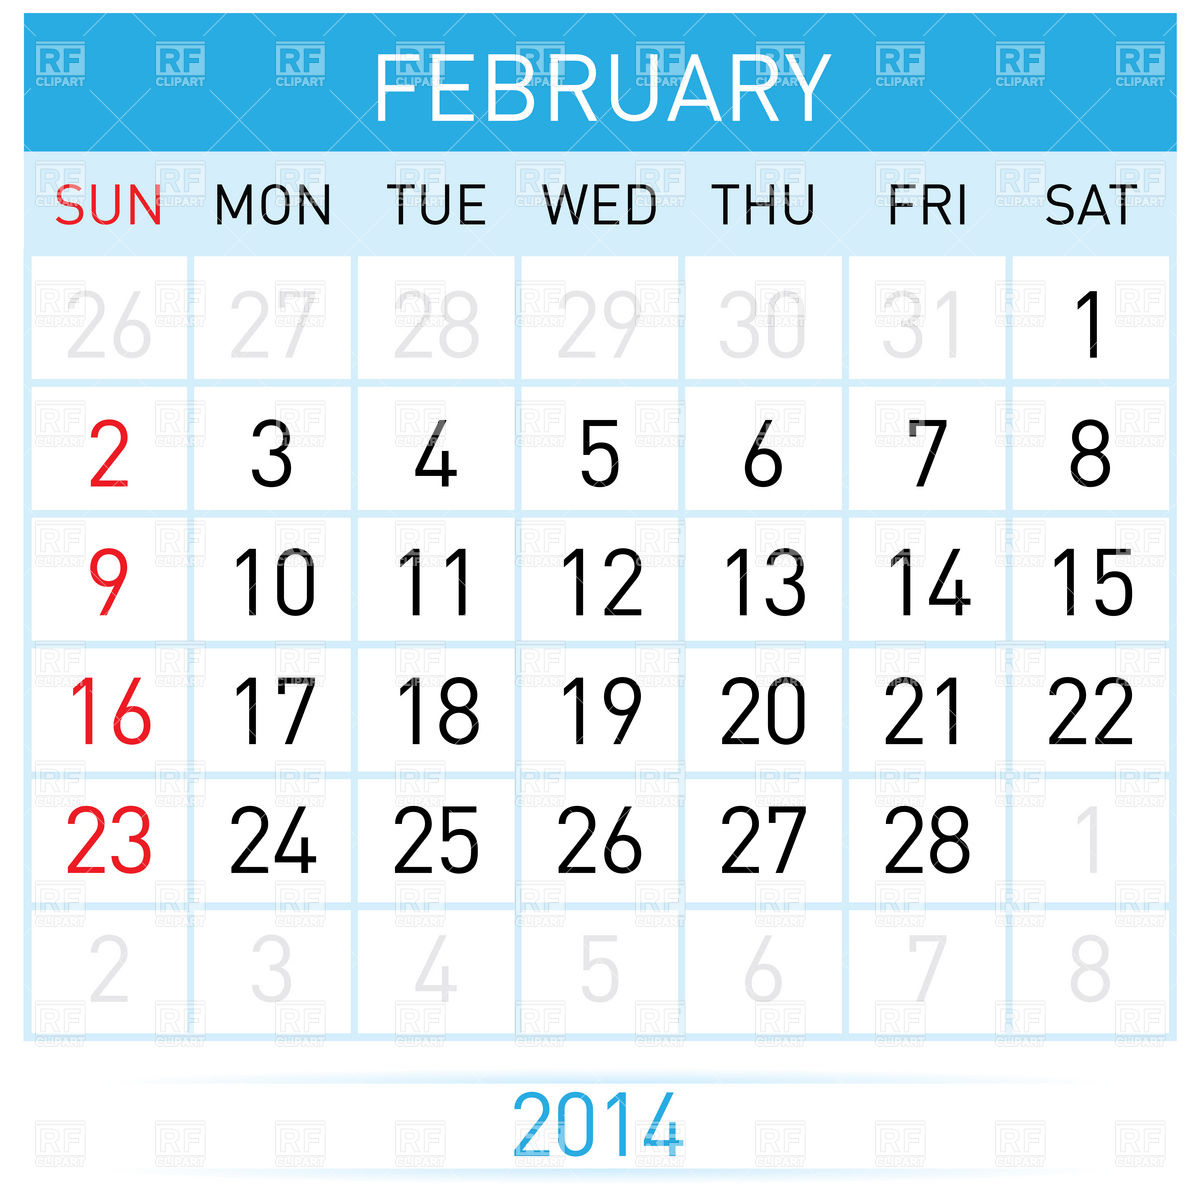 Free february 2014 calendar clipart clip free download February 2014 month calendar Vector Image #7008 – RFclipart clip free download